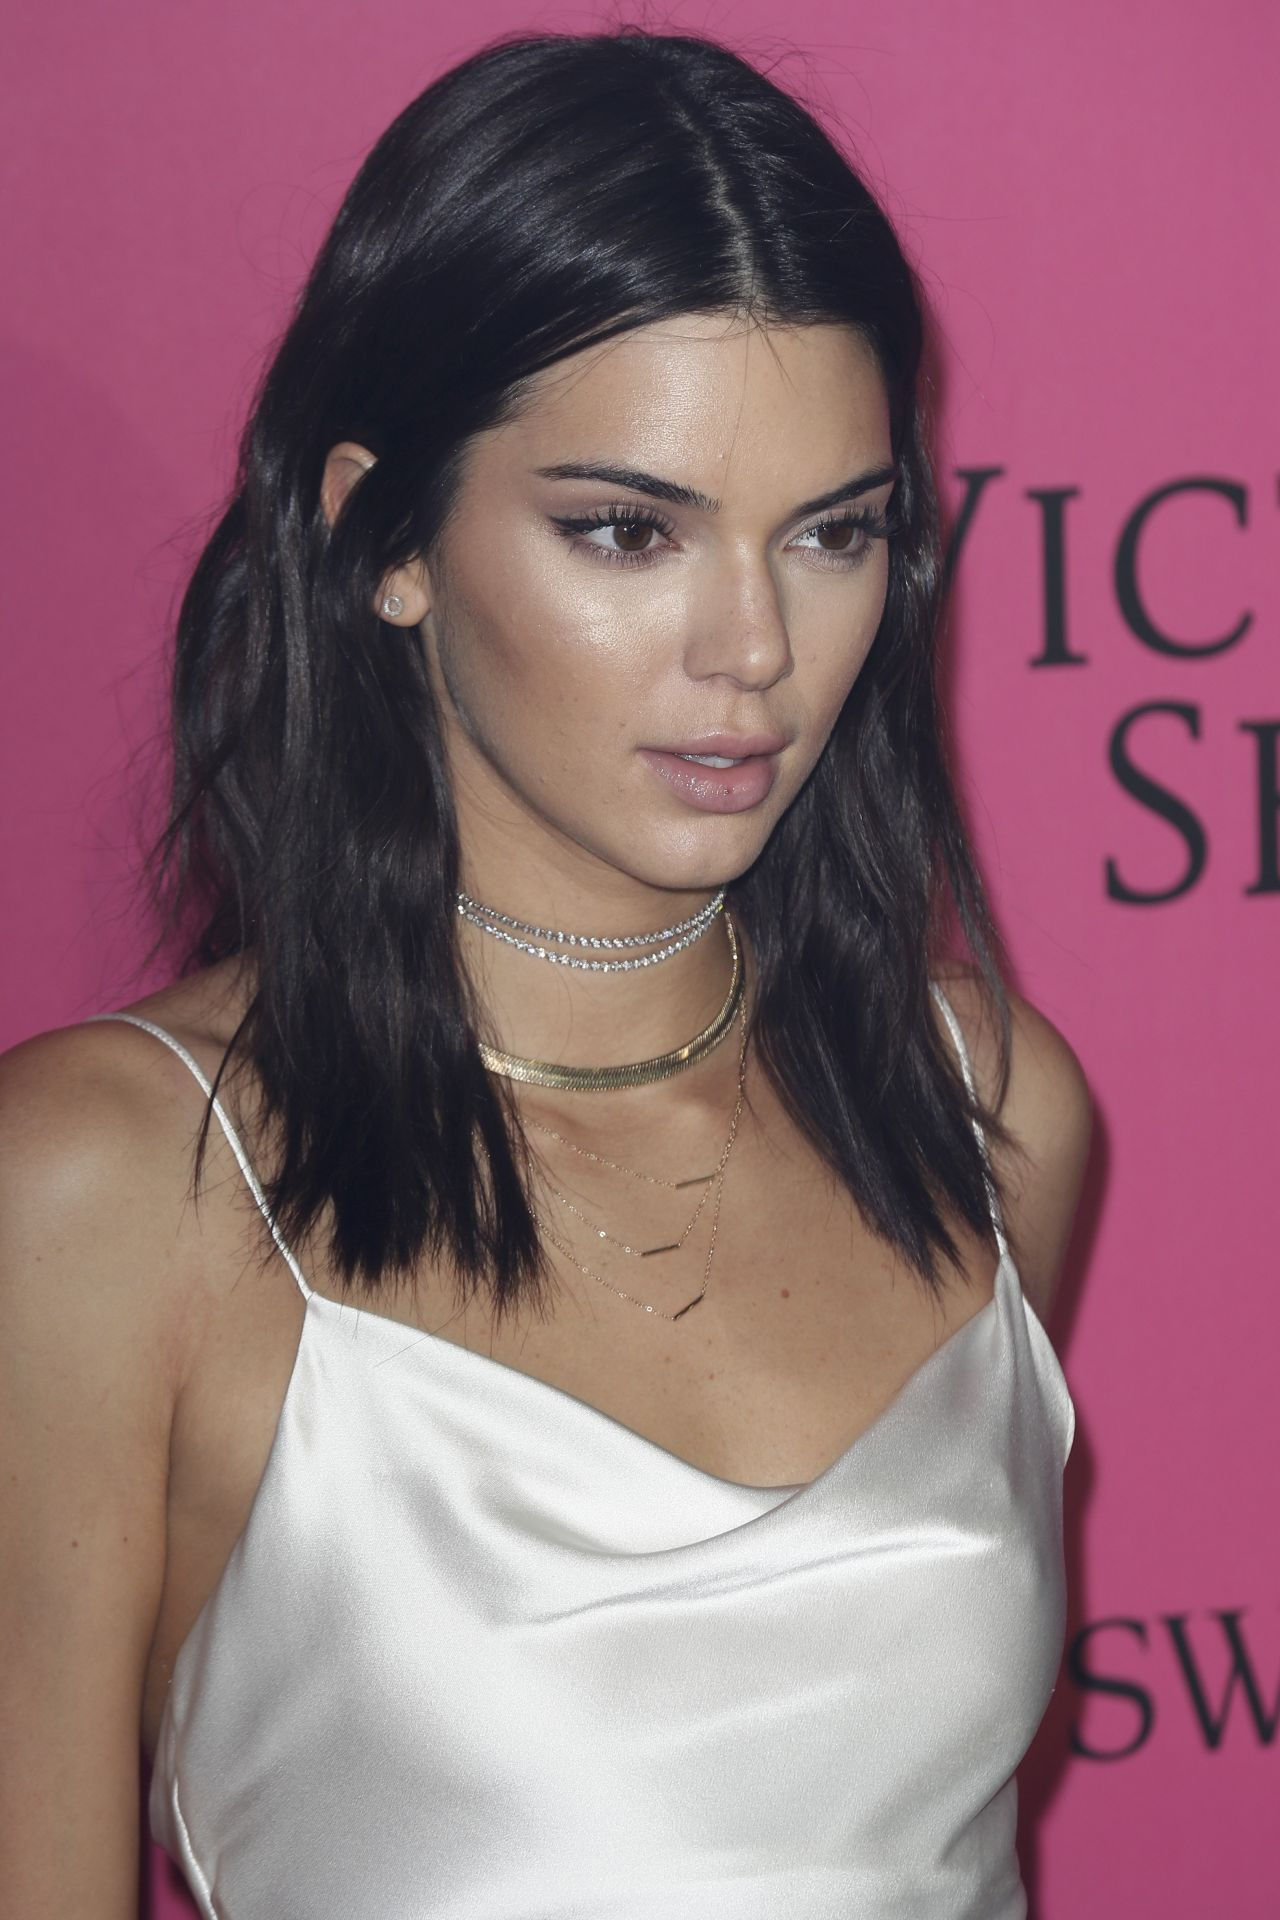 Kendall Jenner Caviar Kaspia Dinner After Pharmacy Stop: Victoria's Secret Fashion Show 2016 After